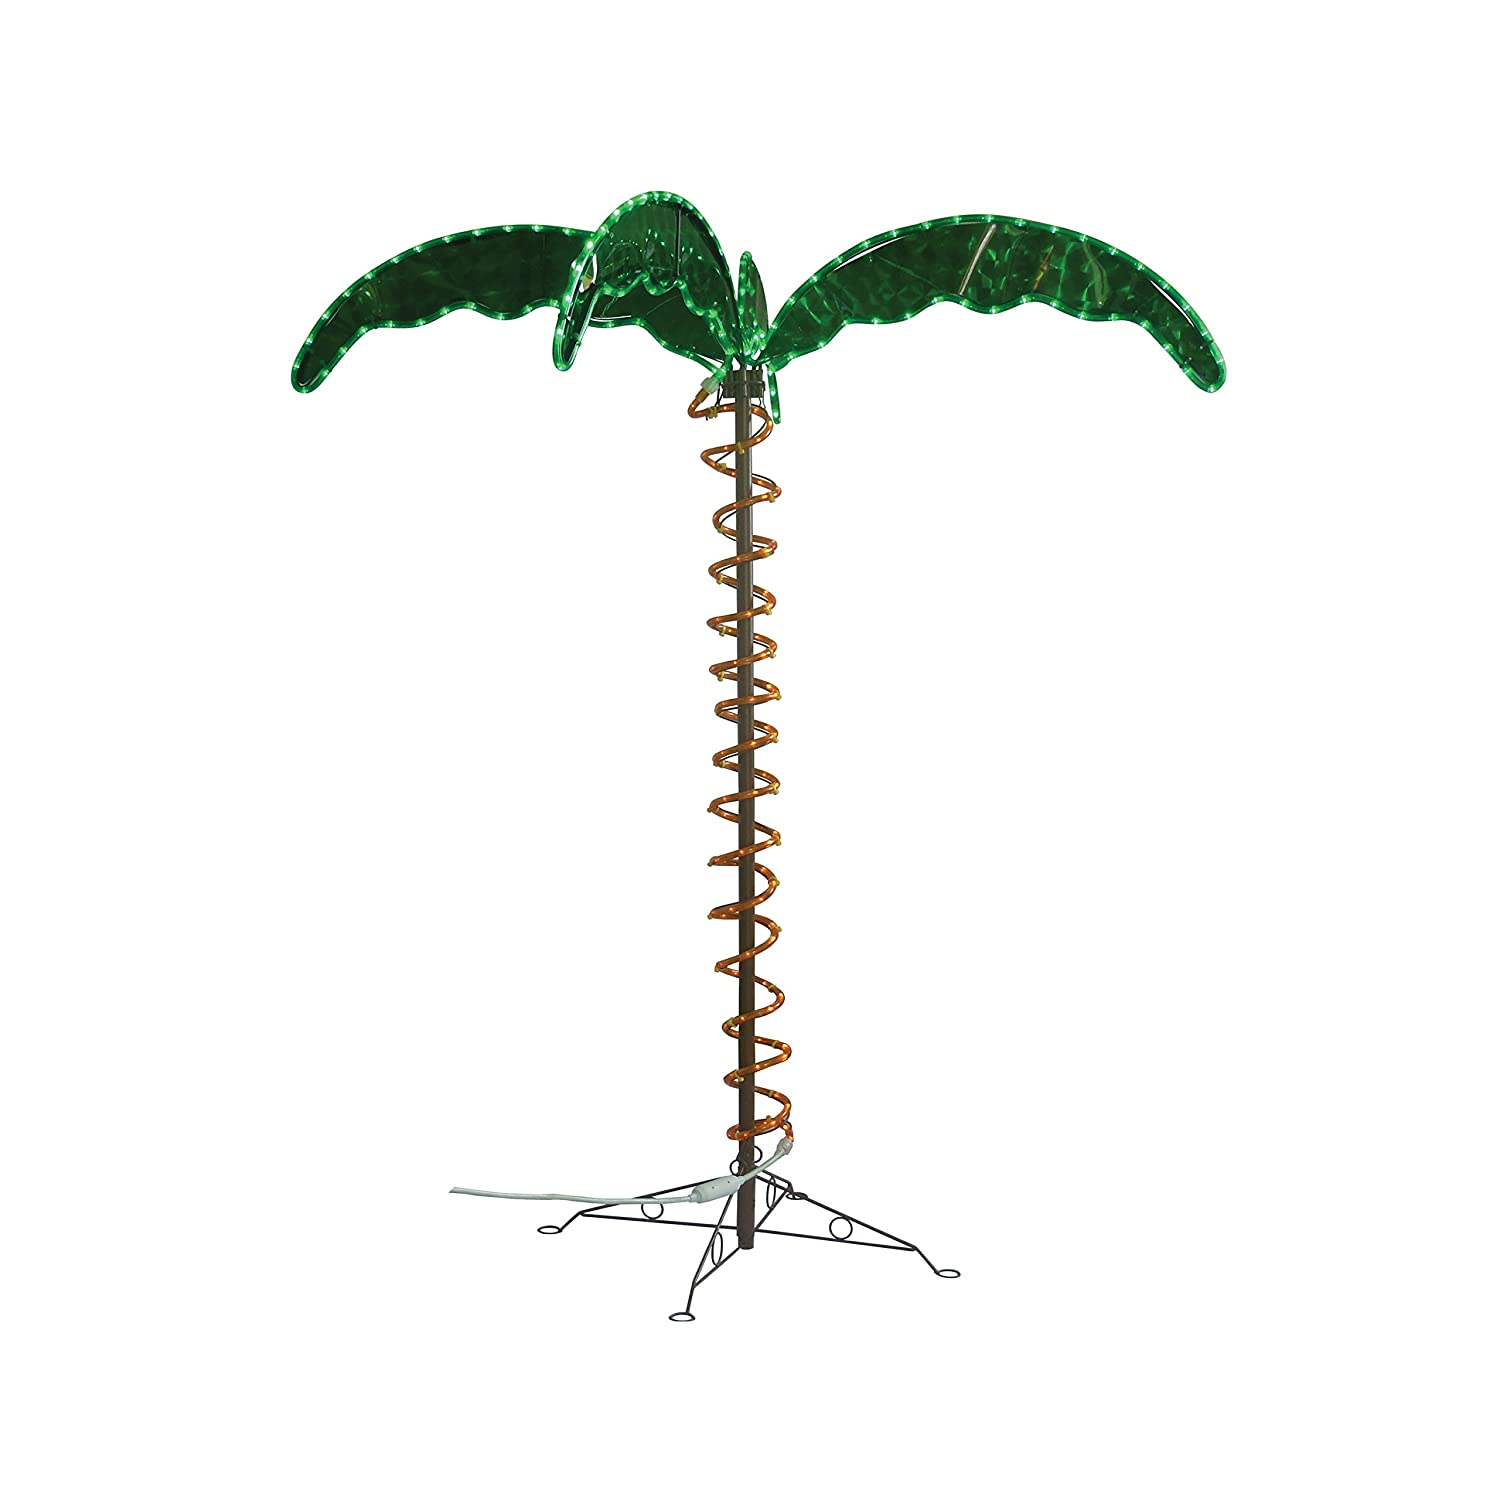 Green LongLife 7070103 7070103 Decorative Palm Tree Rope Light 0410.1996